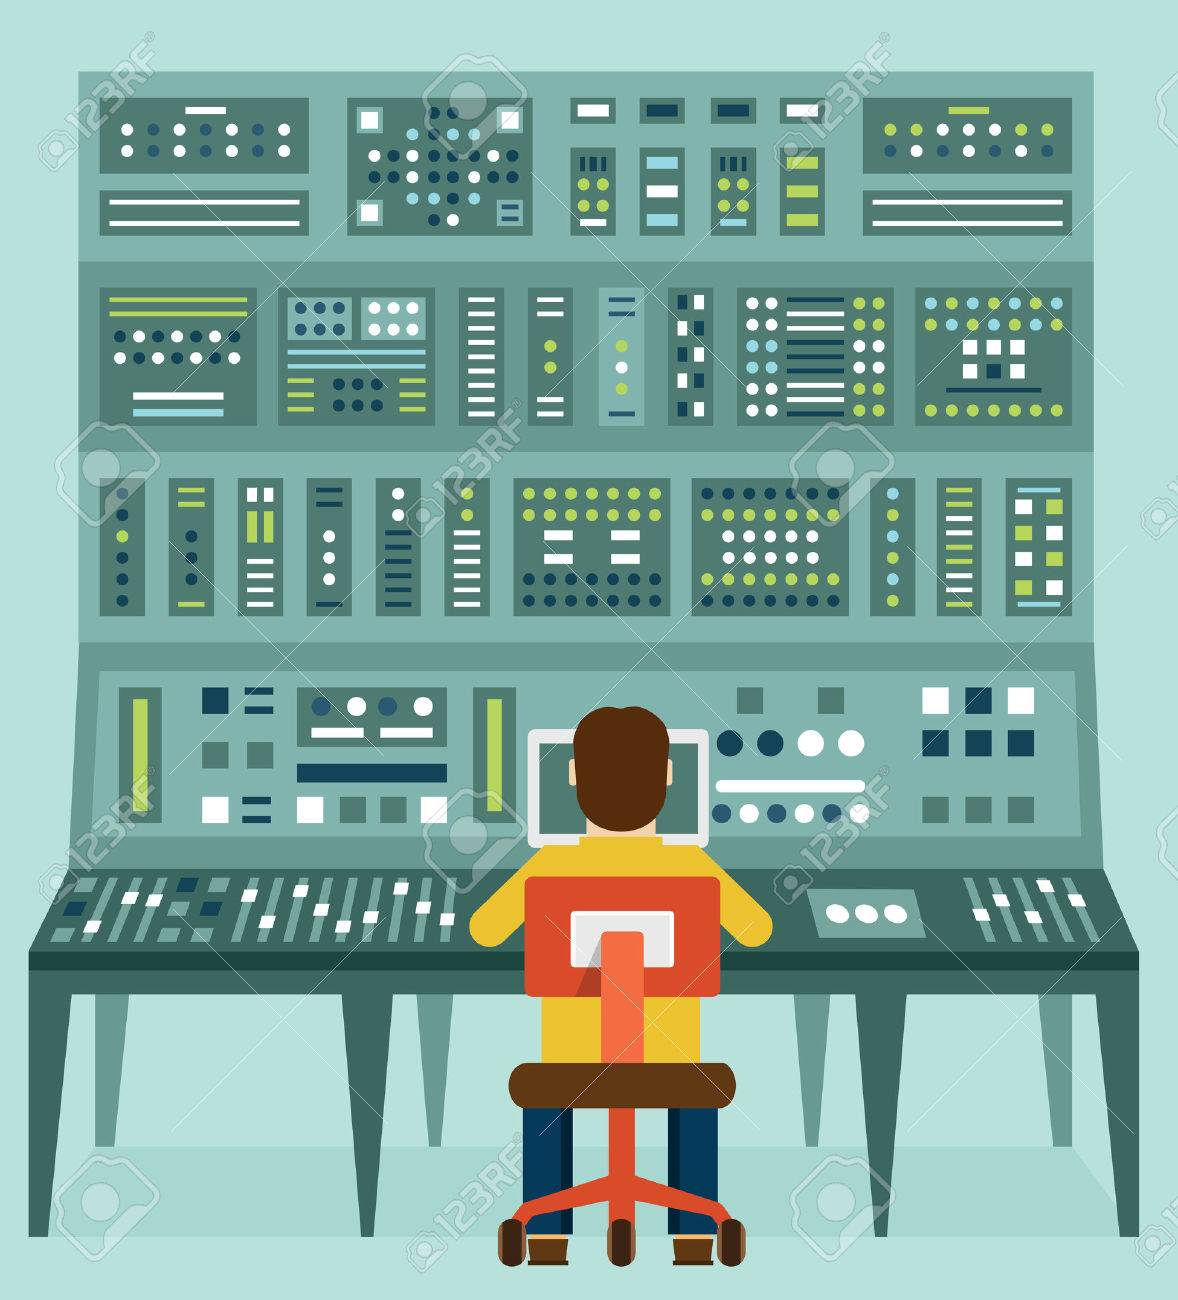 Flat illustration of expert with control panel. - 32614313